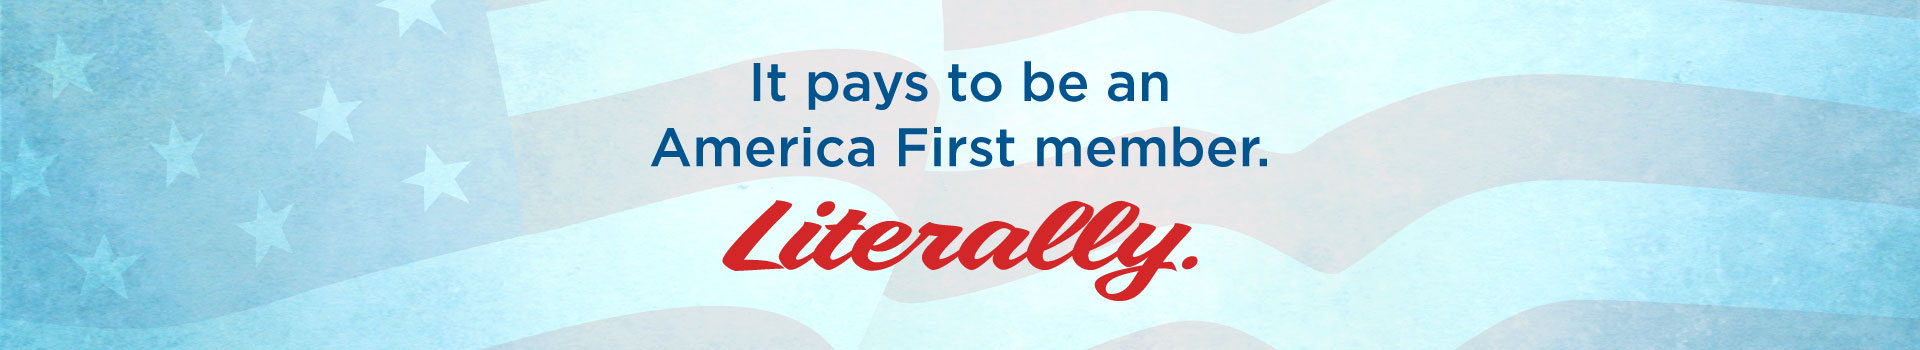 Military Offers - America First Credit Union